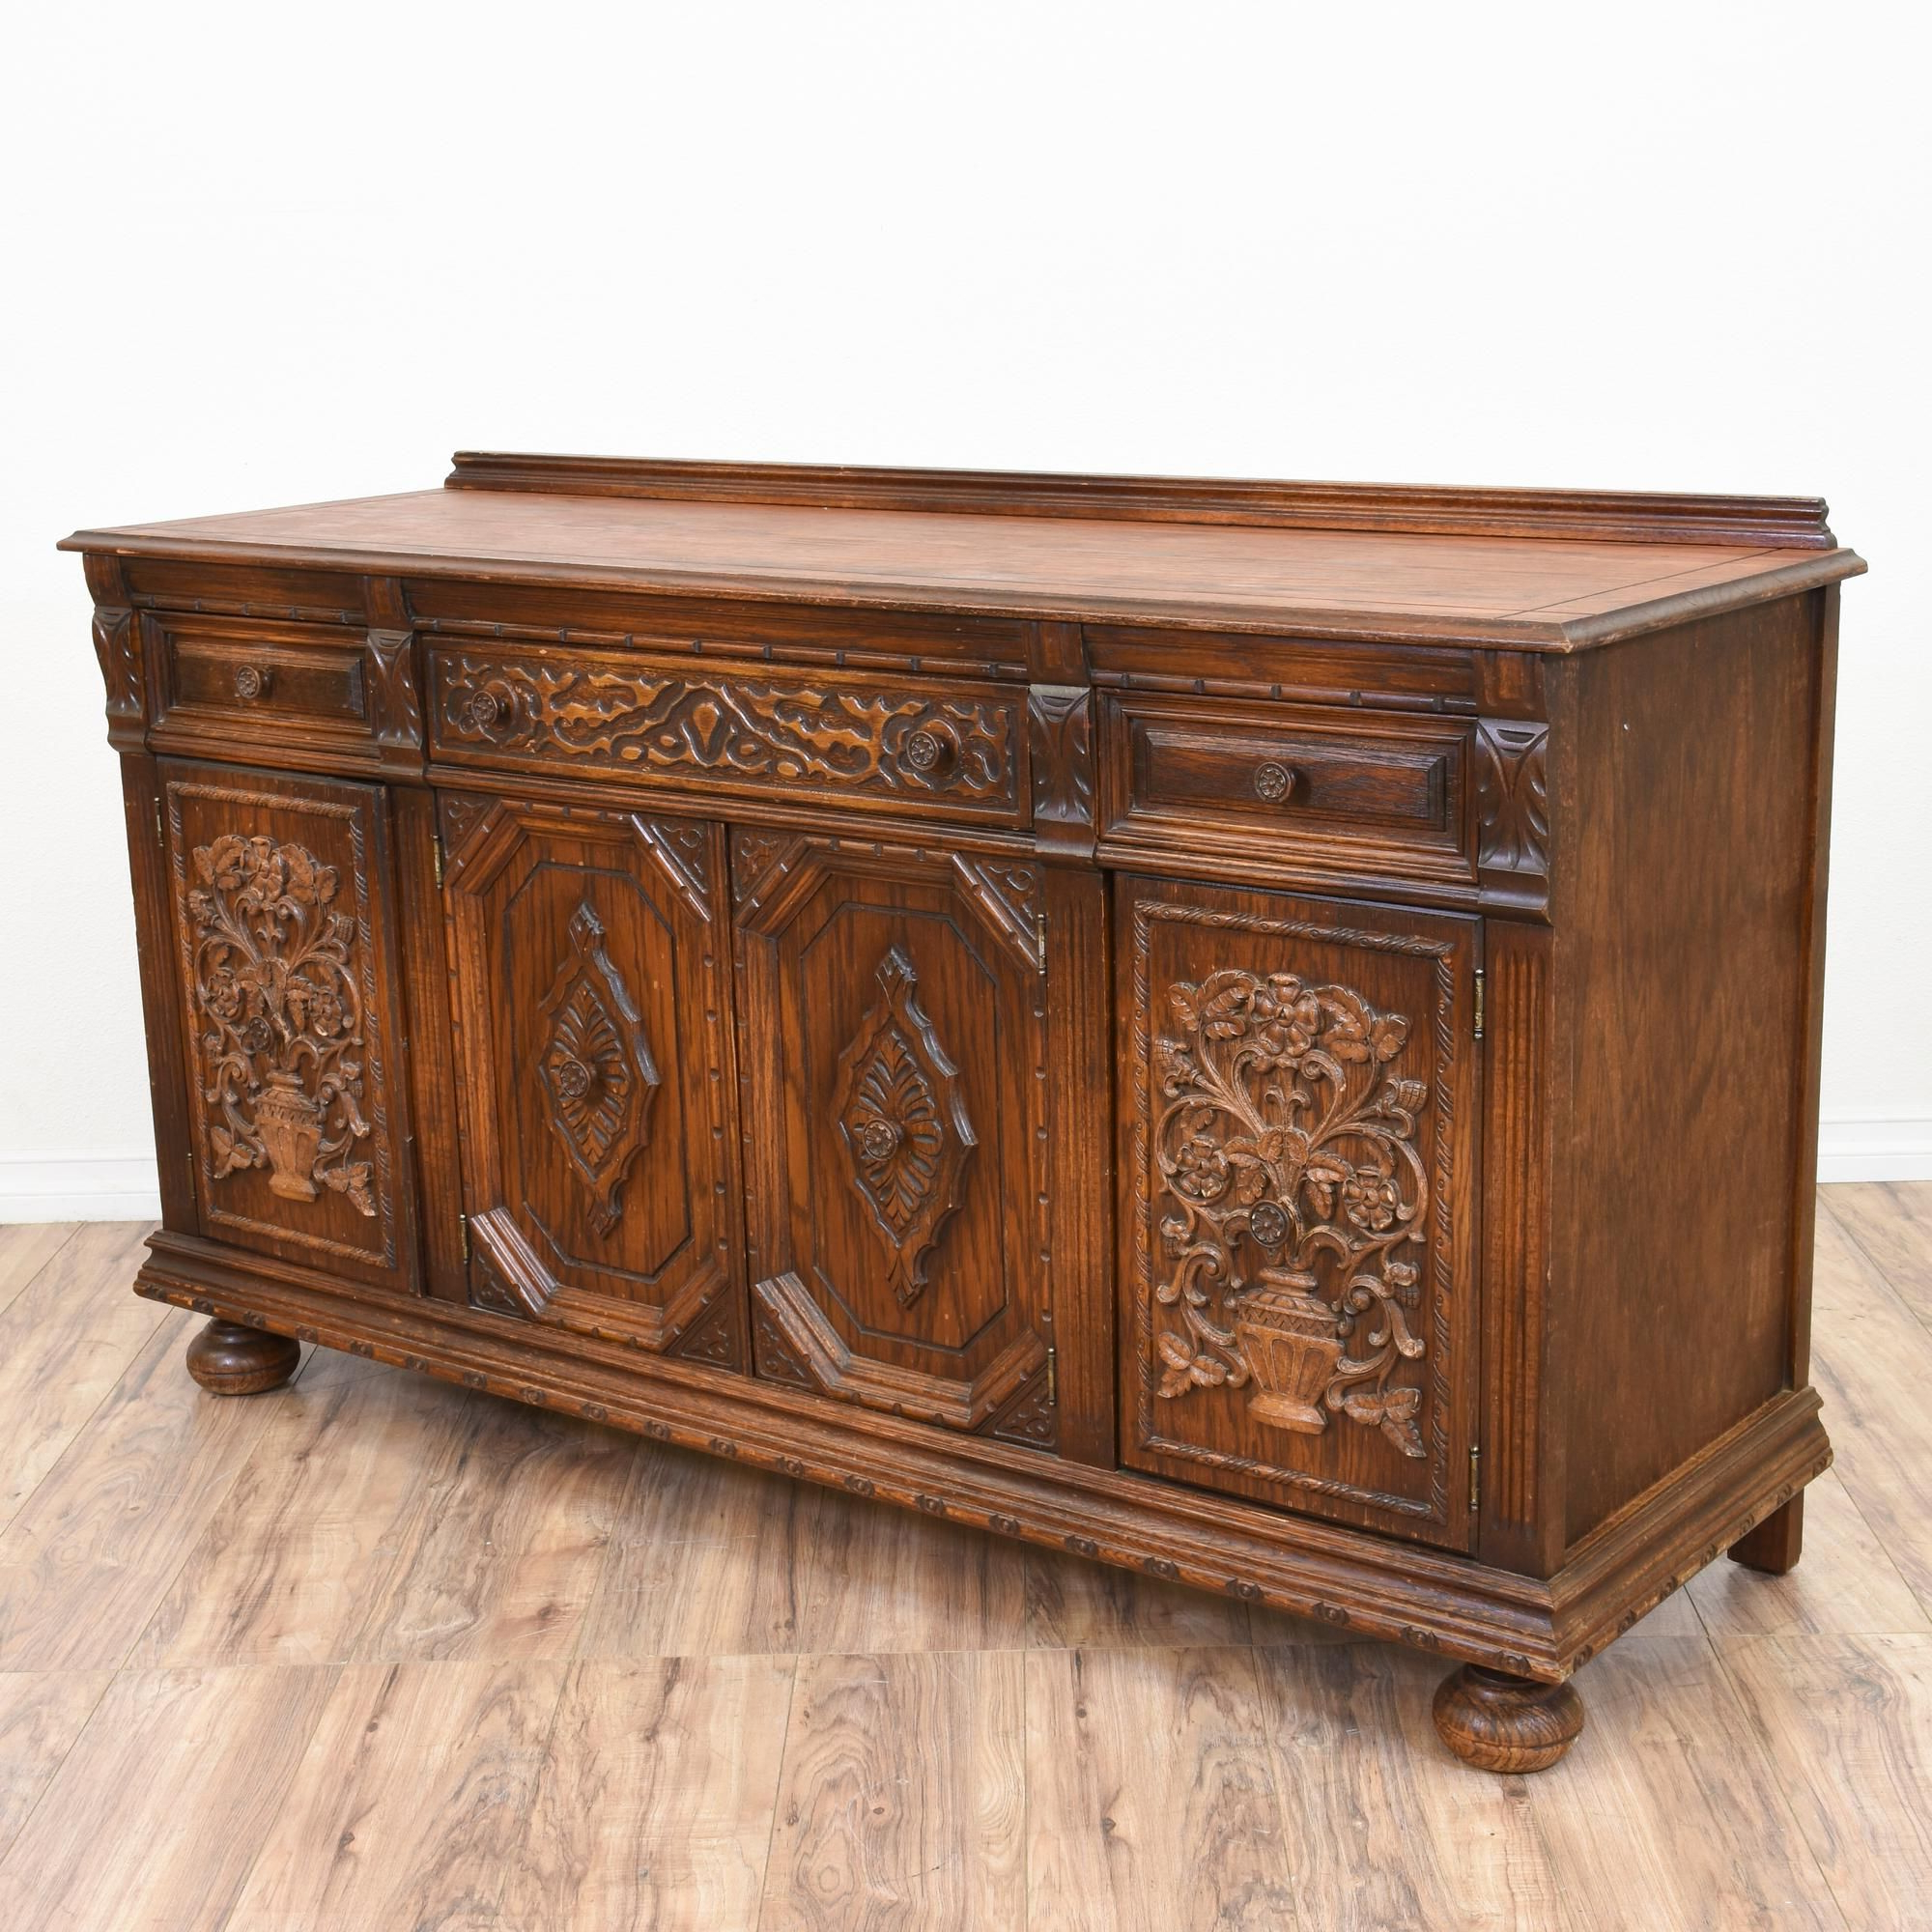 This Antique English Buffet Is Featured In A Solid Wood With A Throughout Widely Used Vintage Finish 4 Door Sideboards (View 15 of 20)